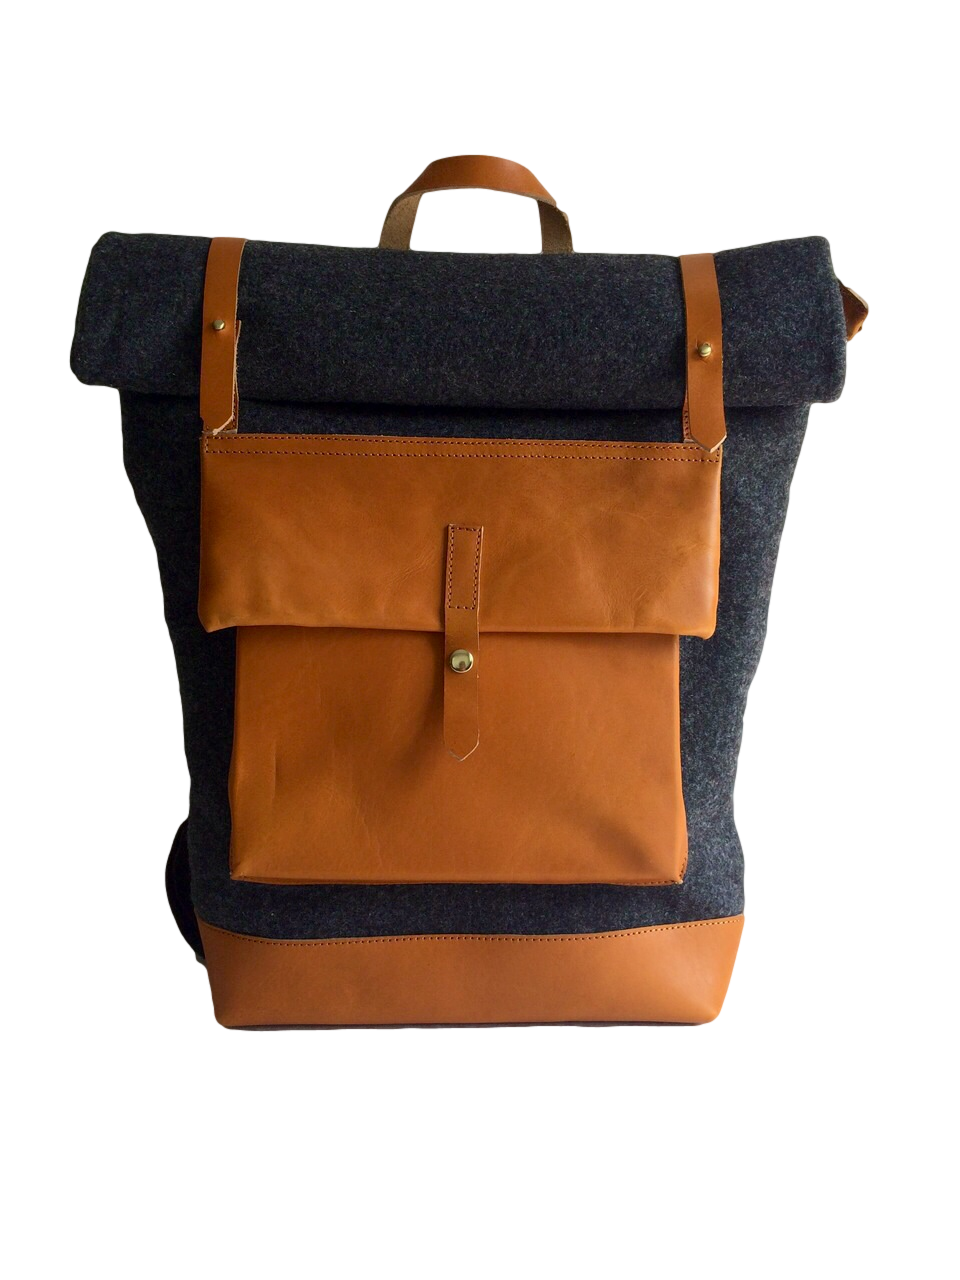 http://www.shop-felix.com/men-accessories/explorer-rucksack